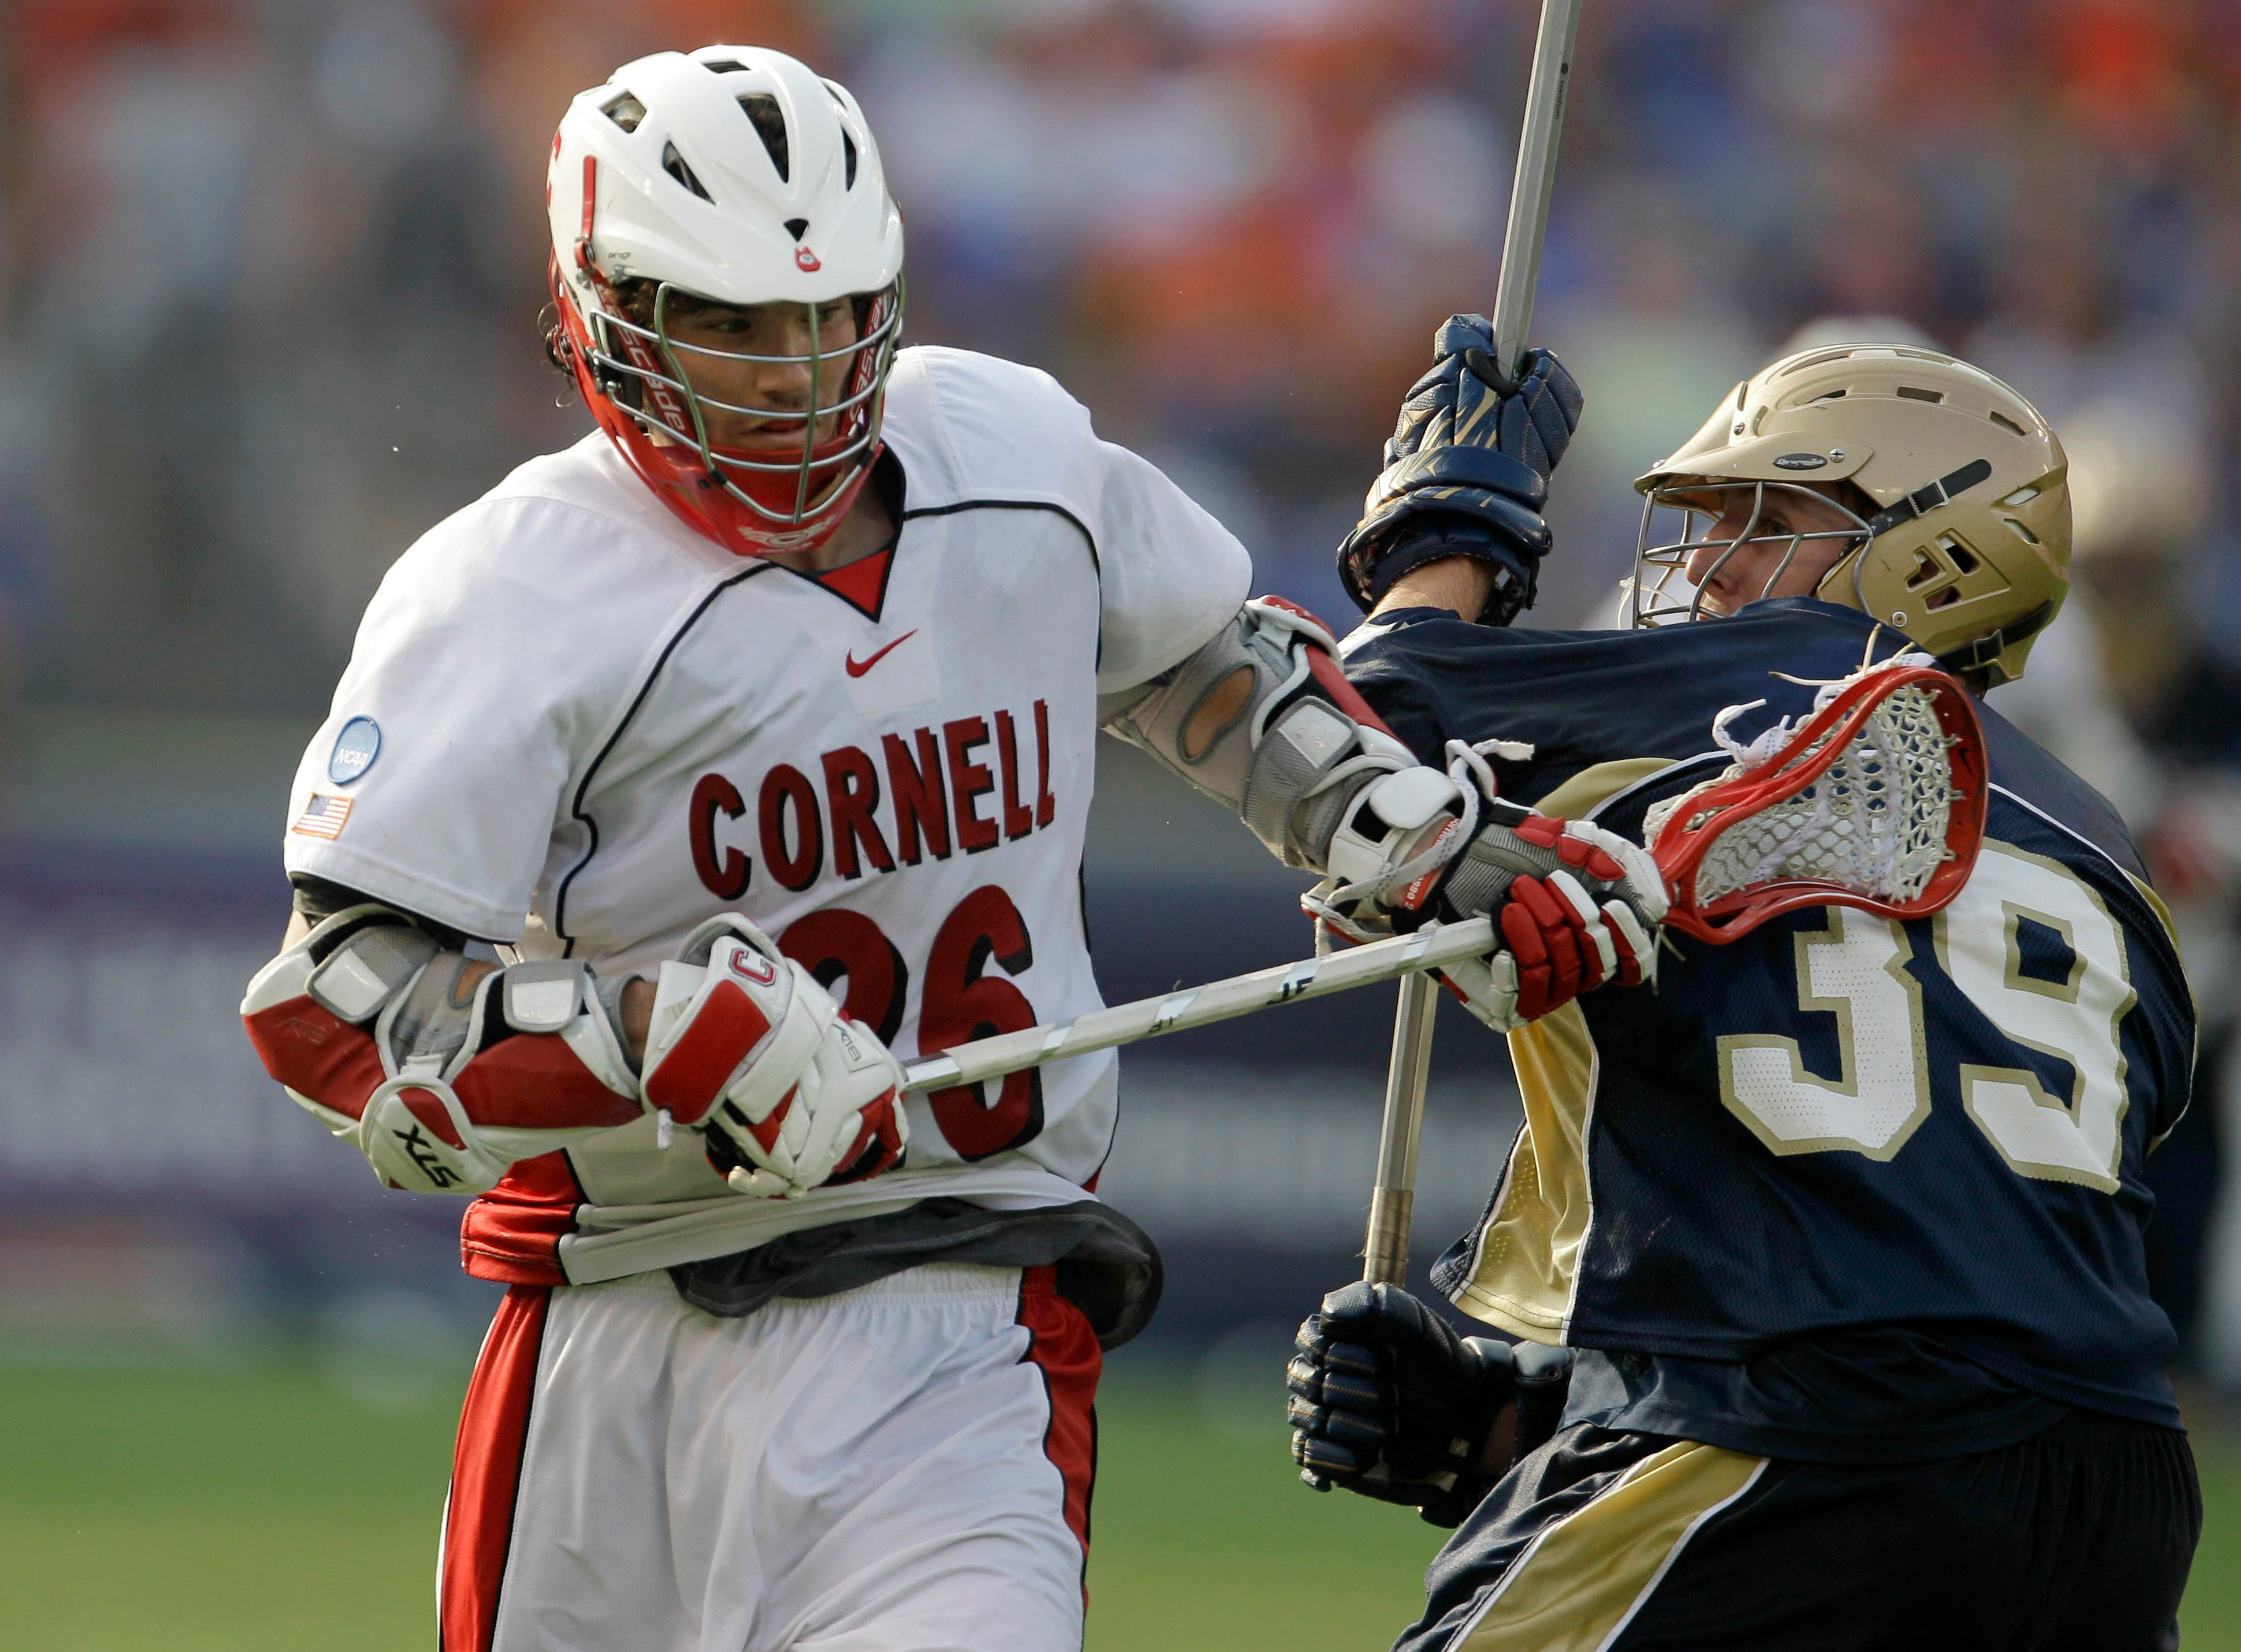 Cornell's TJ Weyl, left, looses control of the ball while being defended by Notre Dame's Kevin Randall (39) during the second half of the NCAA Men's Final Four semifinal lacrosse game, Saturday, May 29, 2010, in Baltimore. Notre Dame won 12-7.